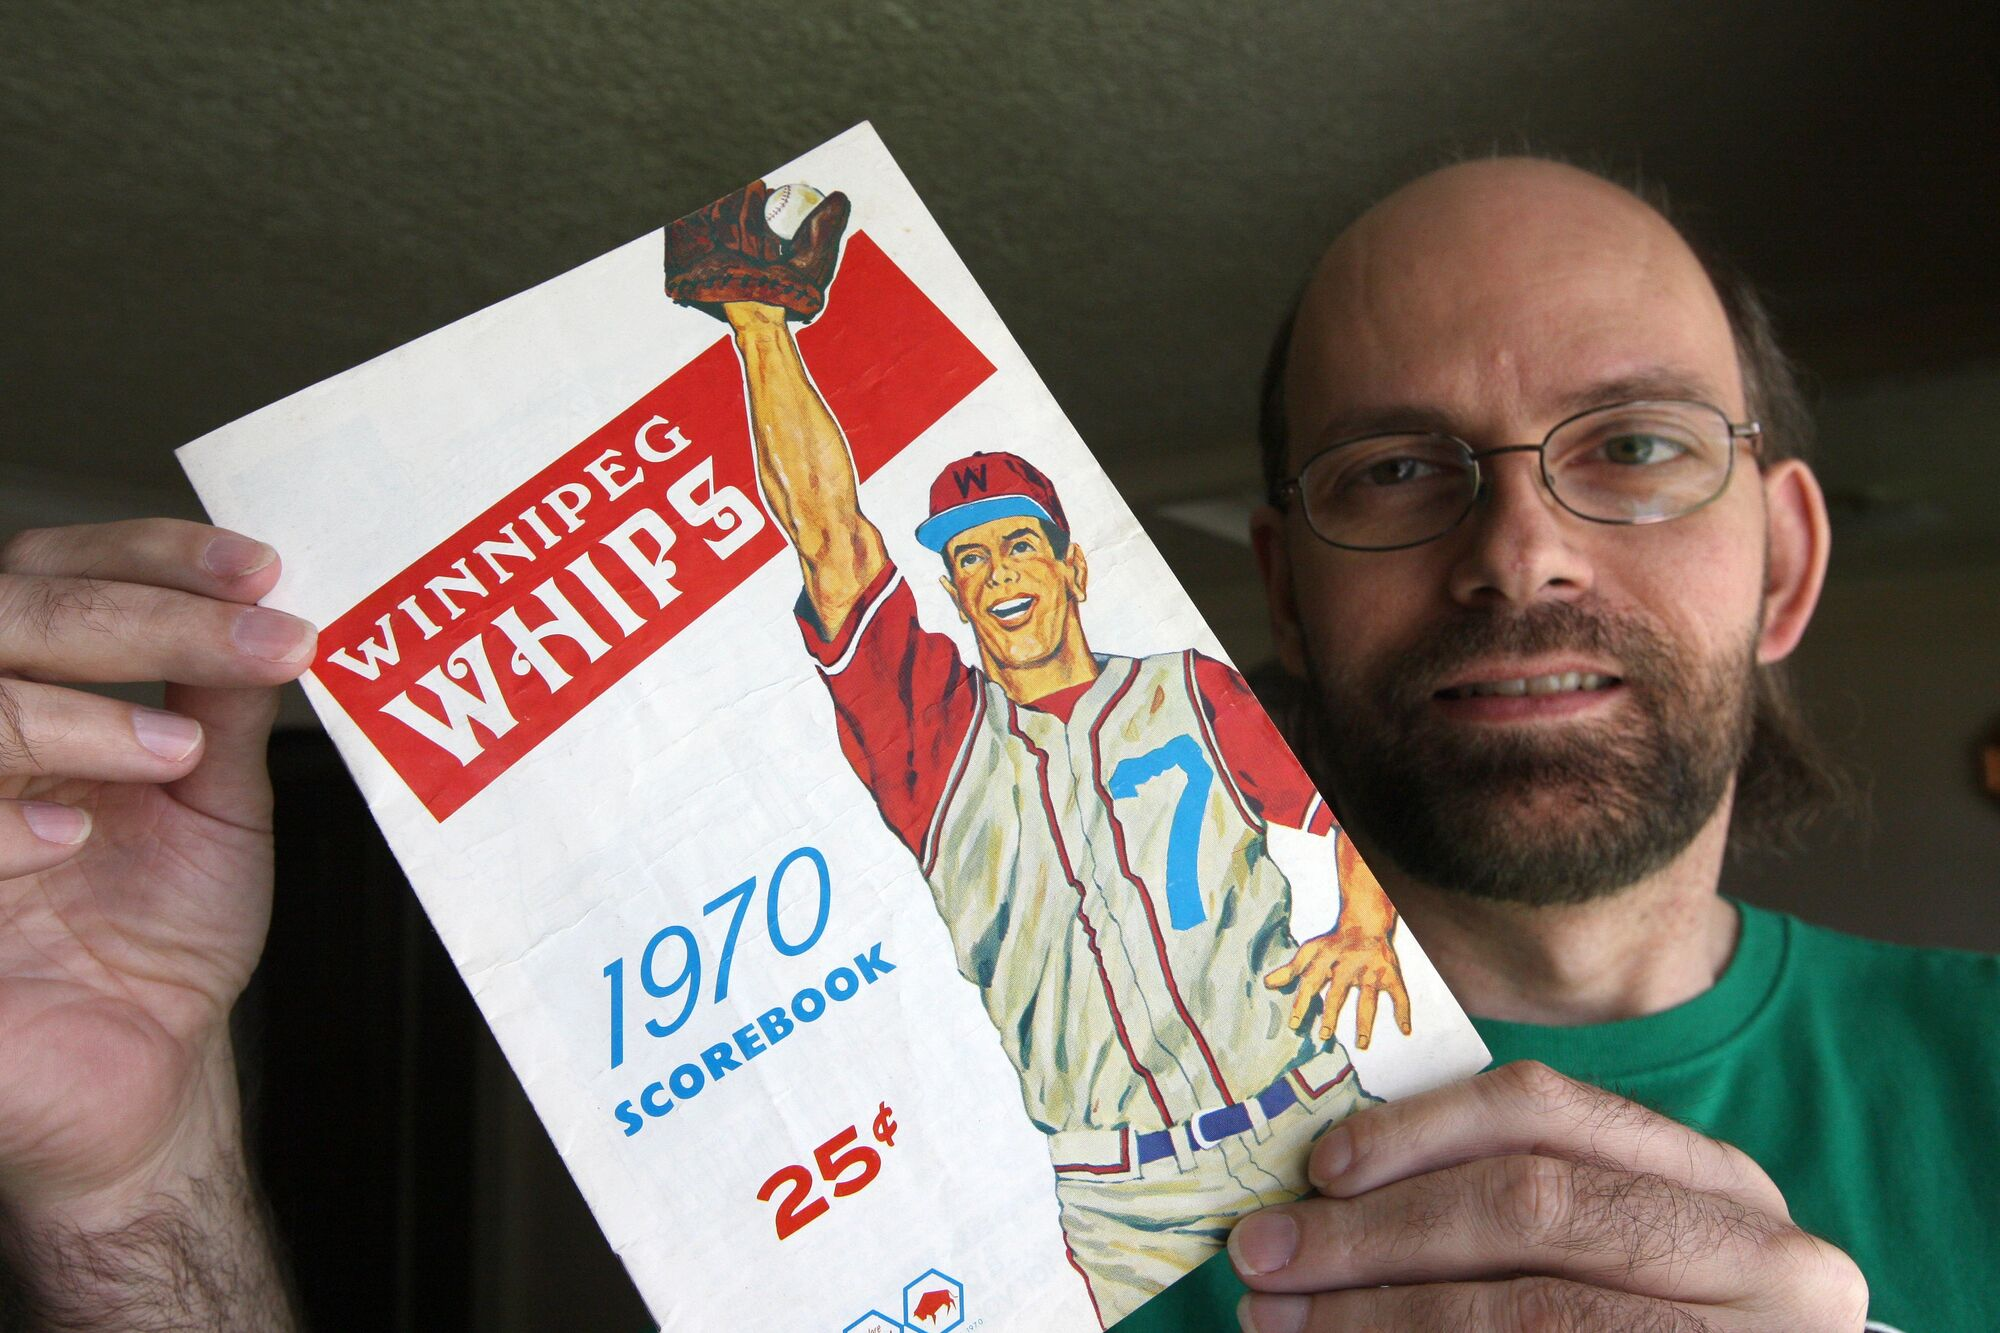 Brian Hrynick with memorabilia from the Whips, a Montreal Expos farm-team that played in Winnipeg for two seasons in the early 1970s.